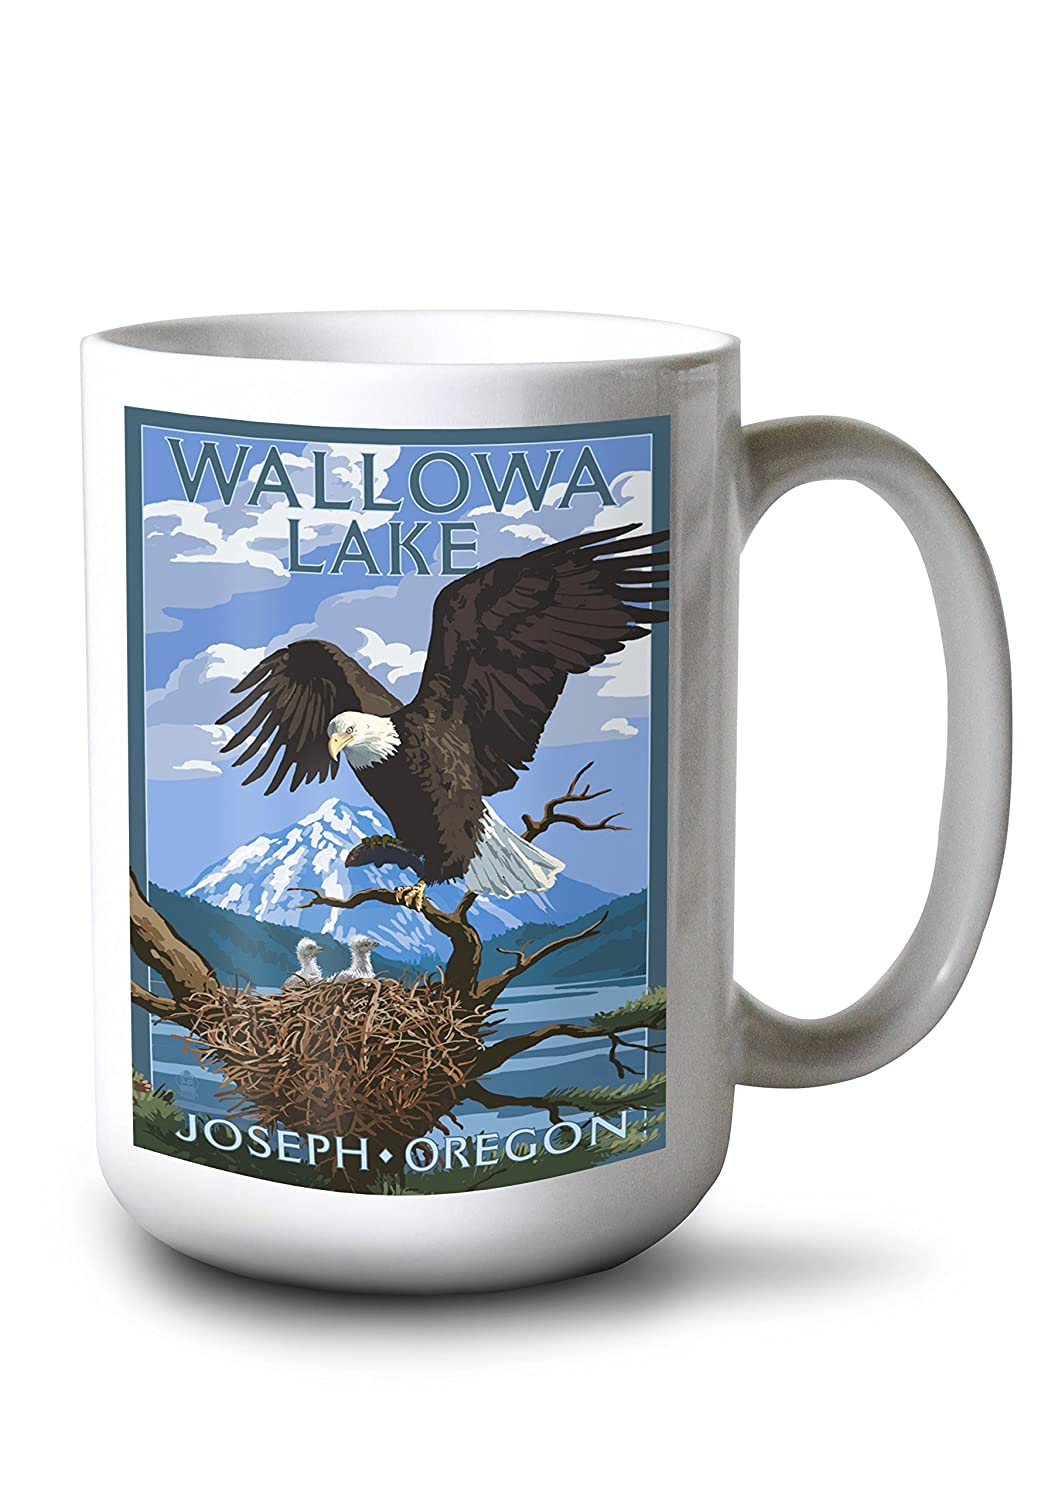 Joseph , Oregon – Wallowa湖Eagle and Chicks 15oz Mug LANT-3P-15OZ-WHT-50375 B01AYCN848  15oz Mug